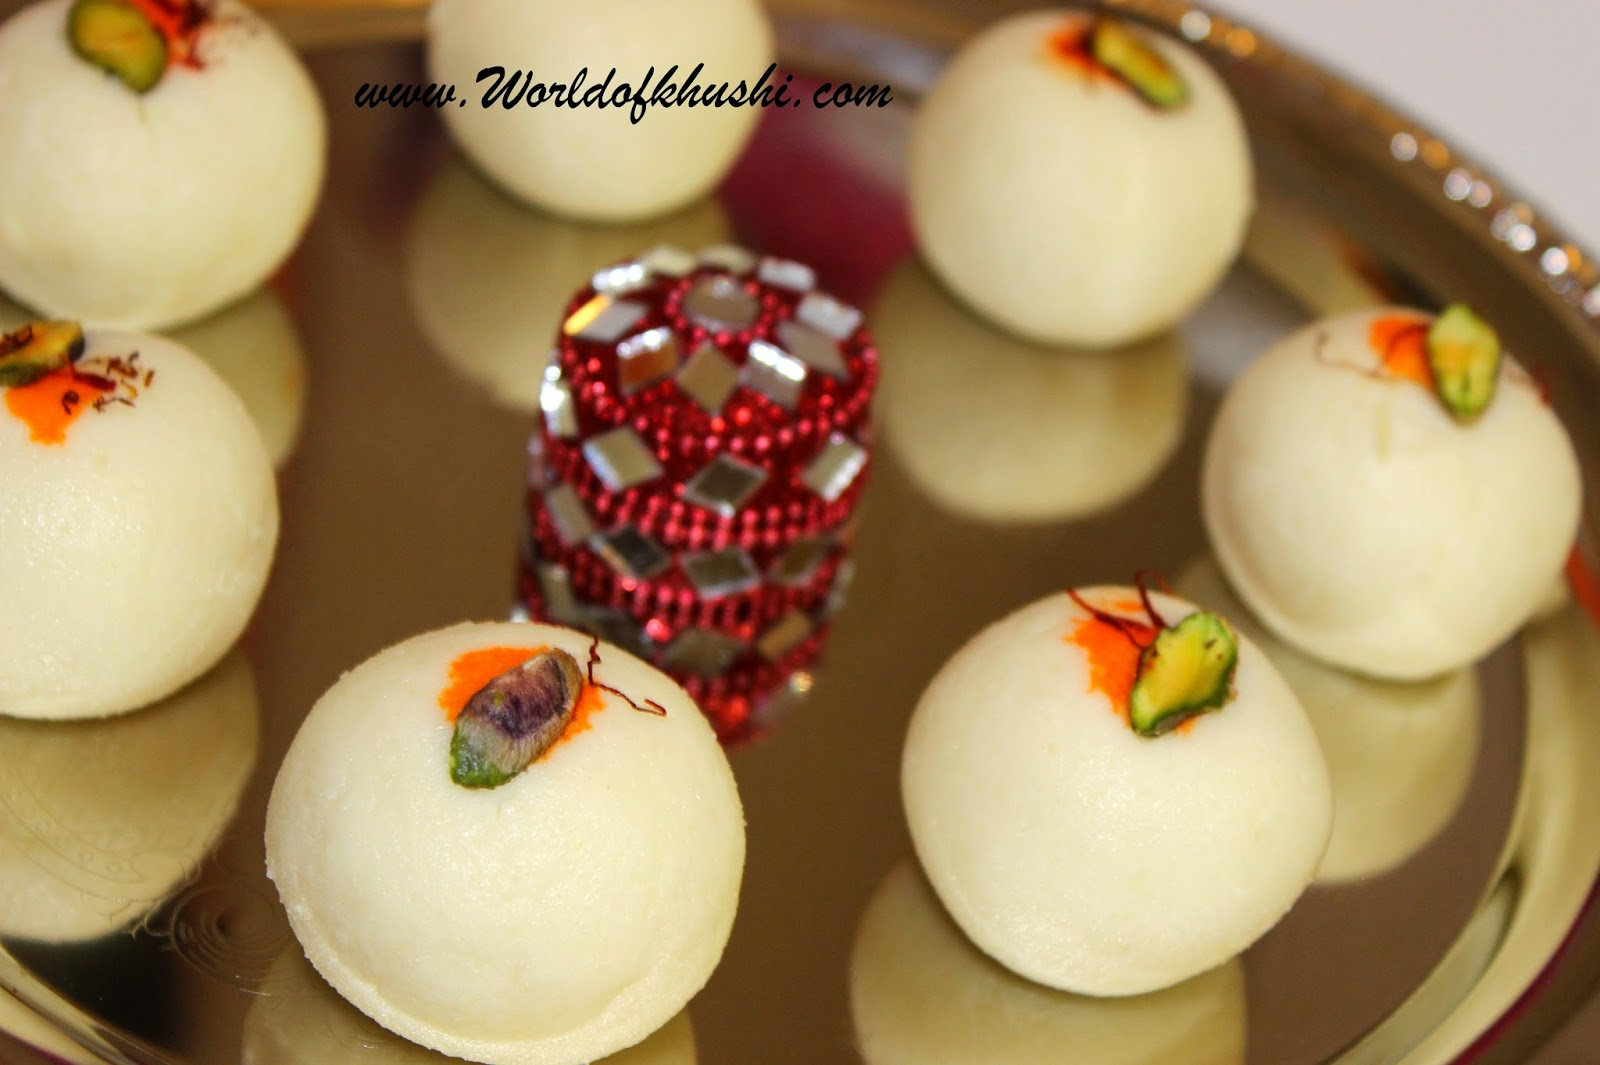 Khushi's World Malai Ladoo